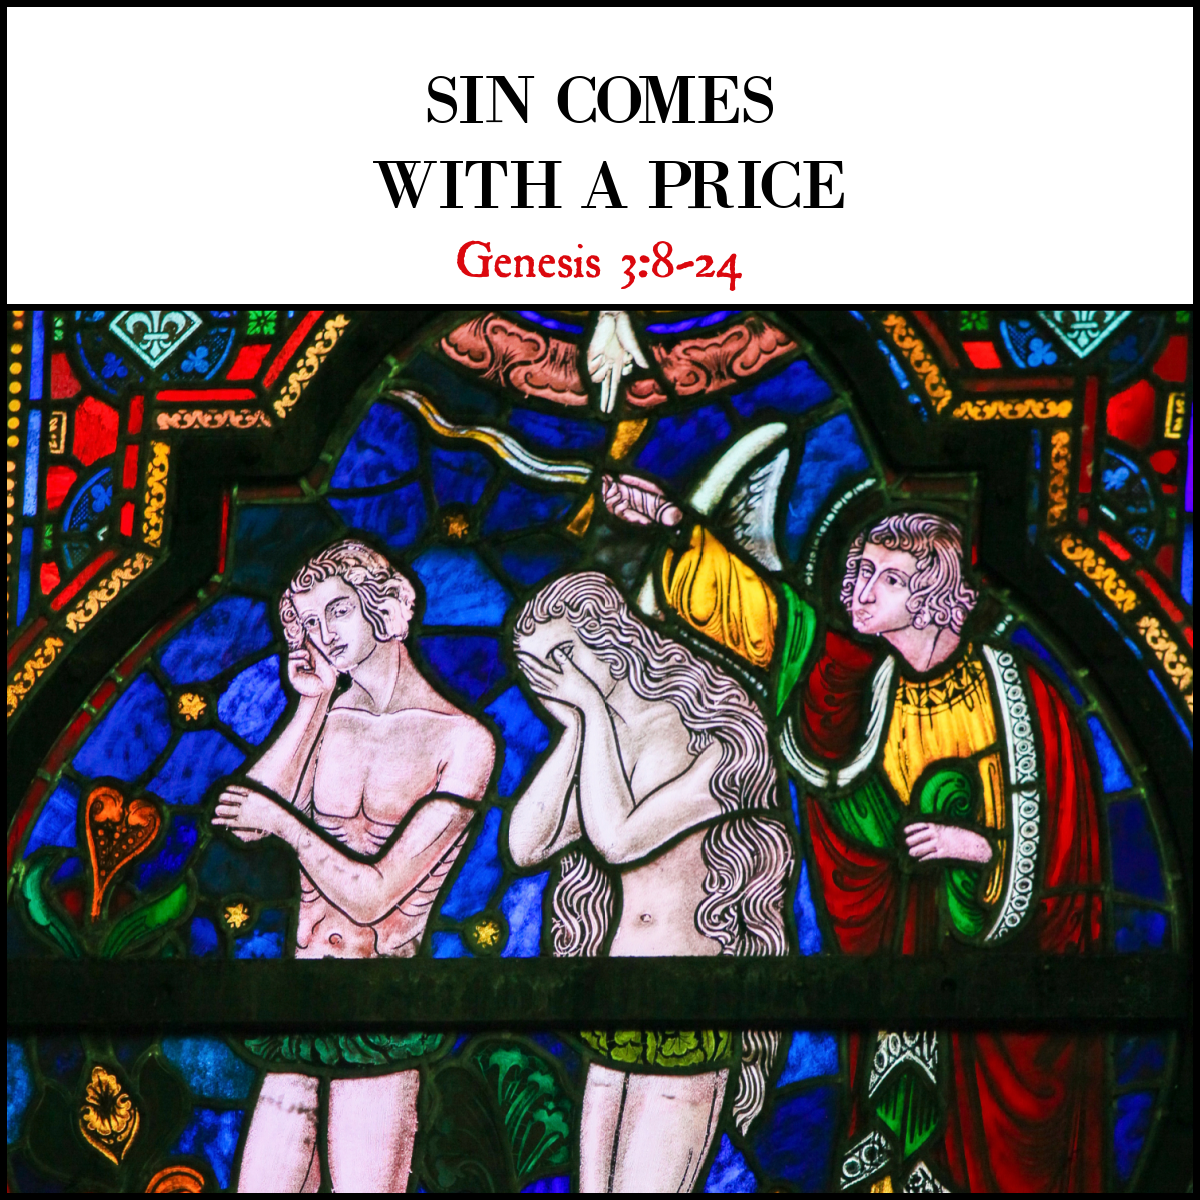 Sin Comes With Price 2 image